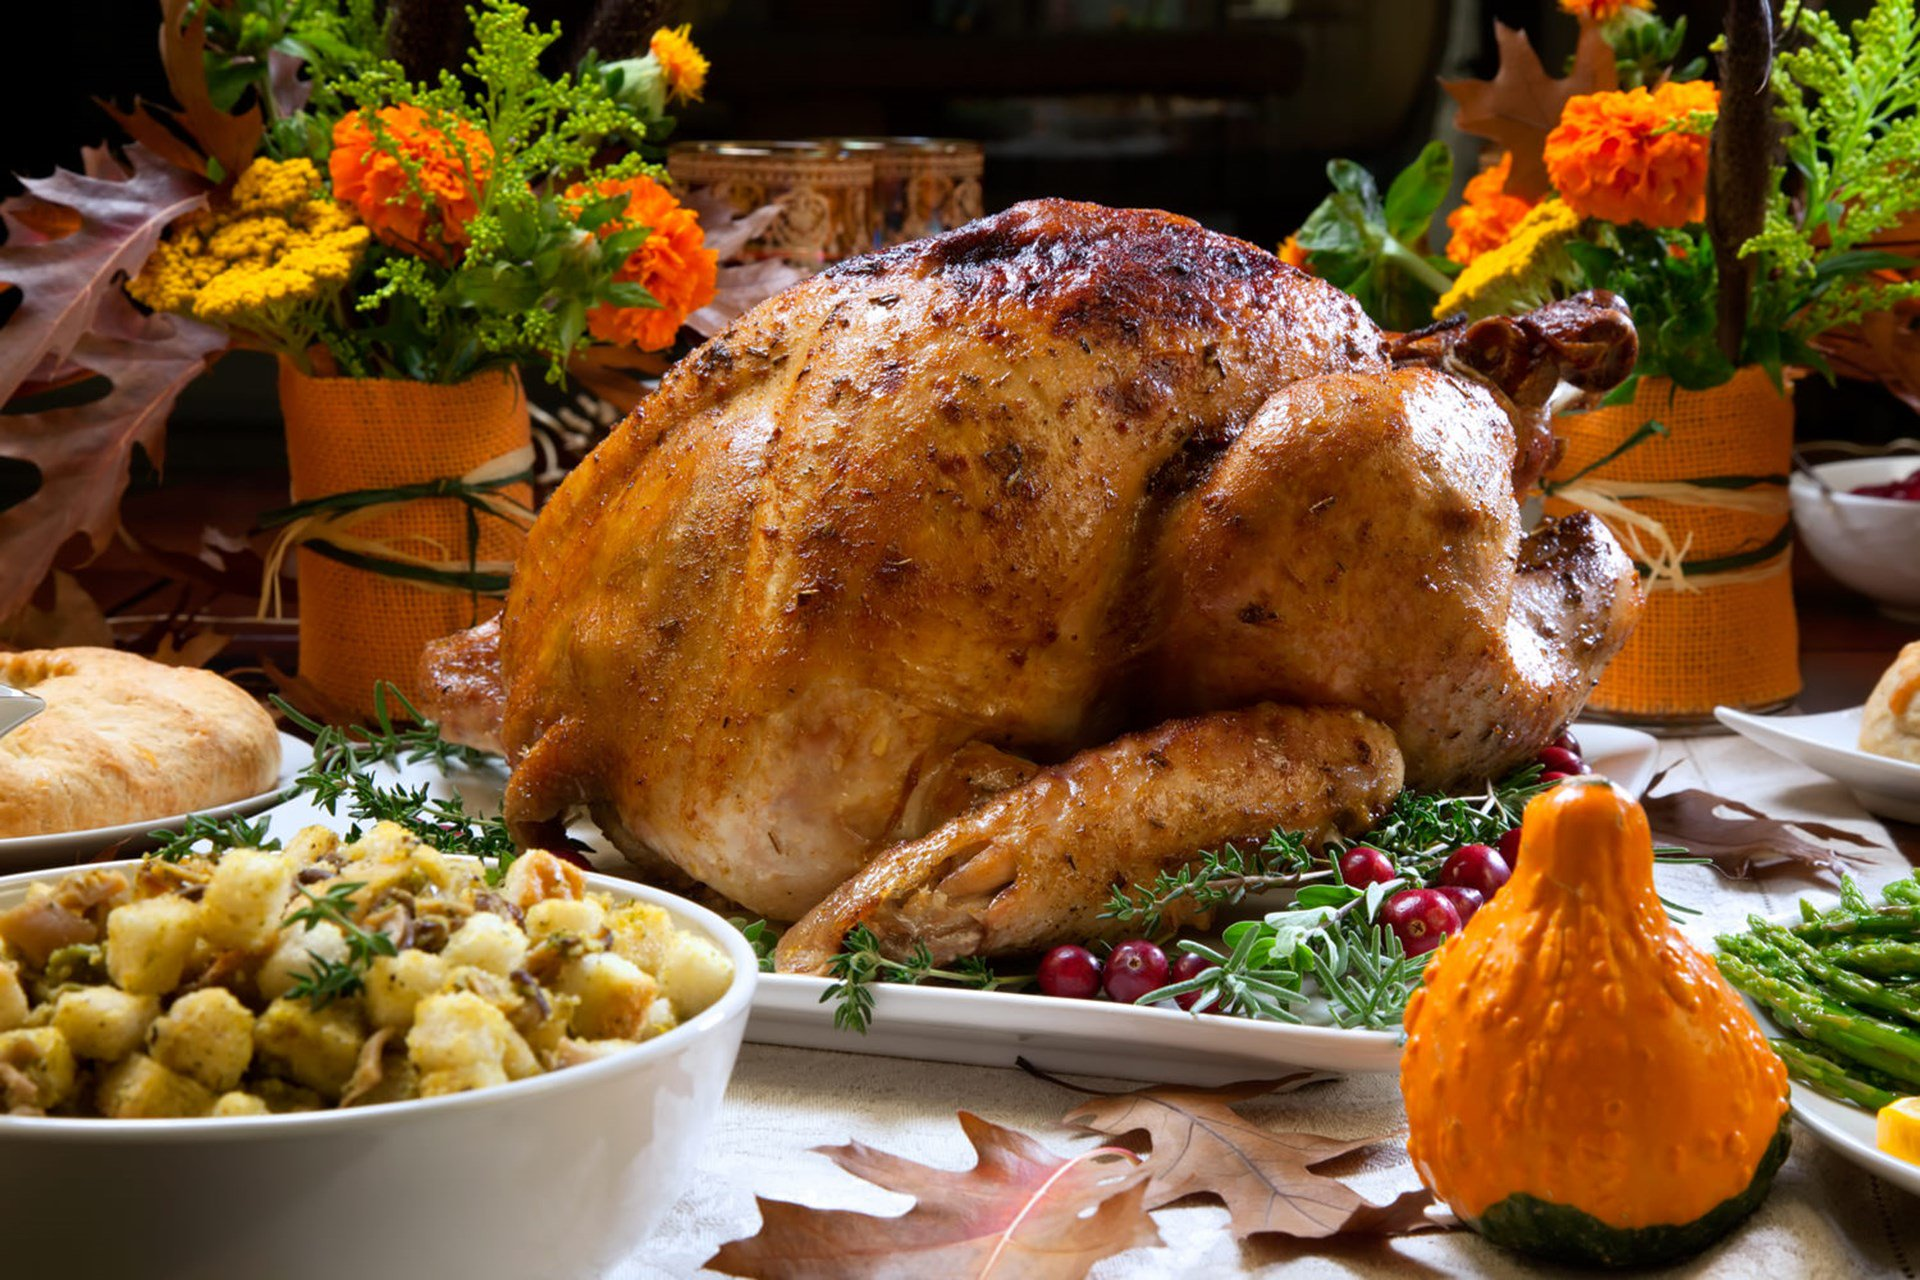 Thanksgiving Turkey: 3 Tips to Cut Costs Before Buying